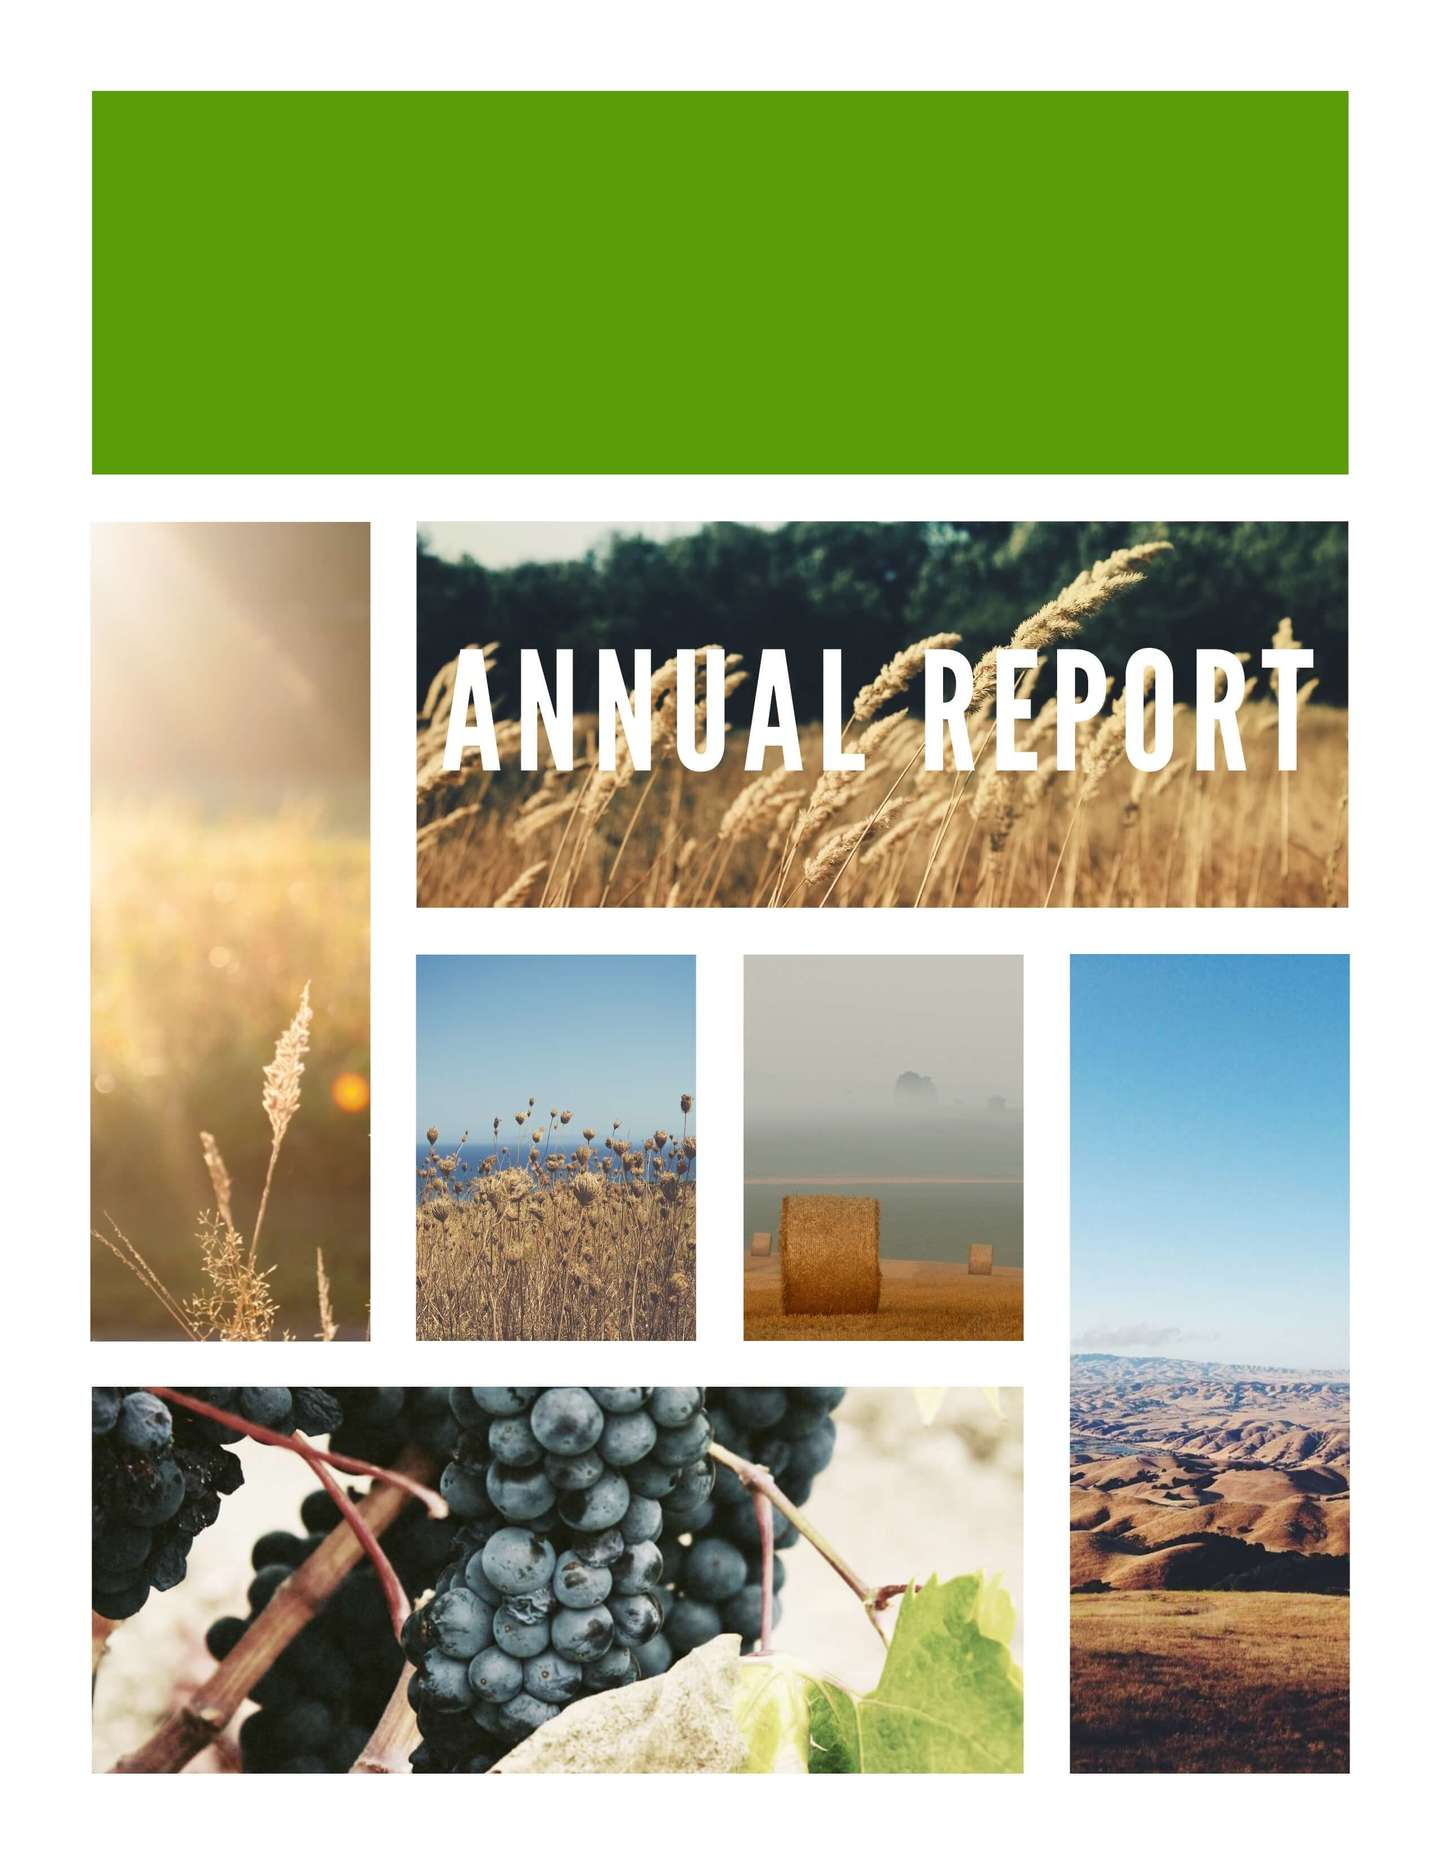 Free Annual Report Templates Examples Free Templates - Luxury estate planning templates design